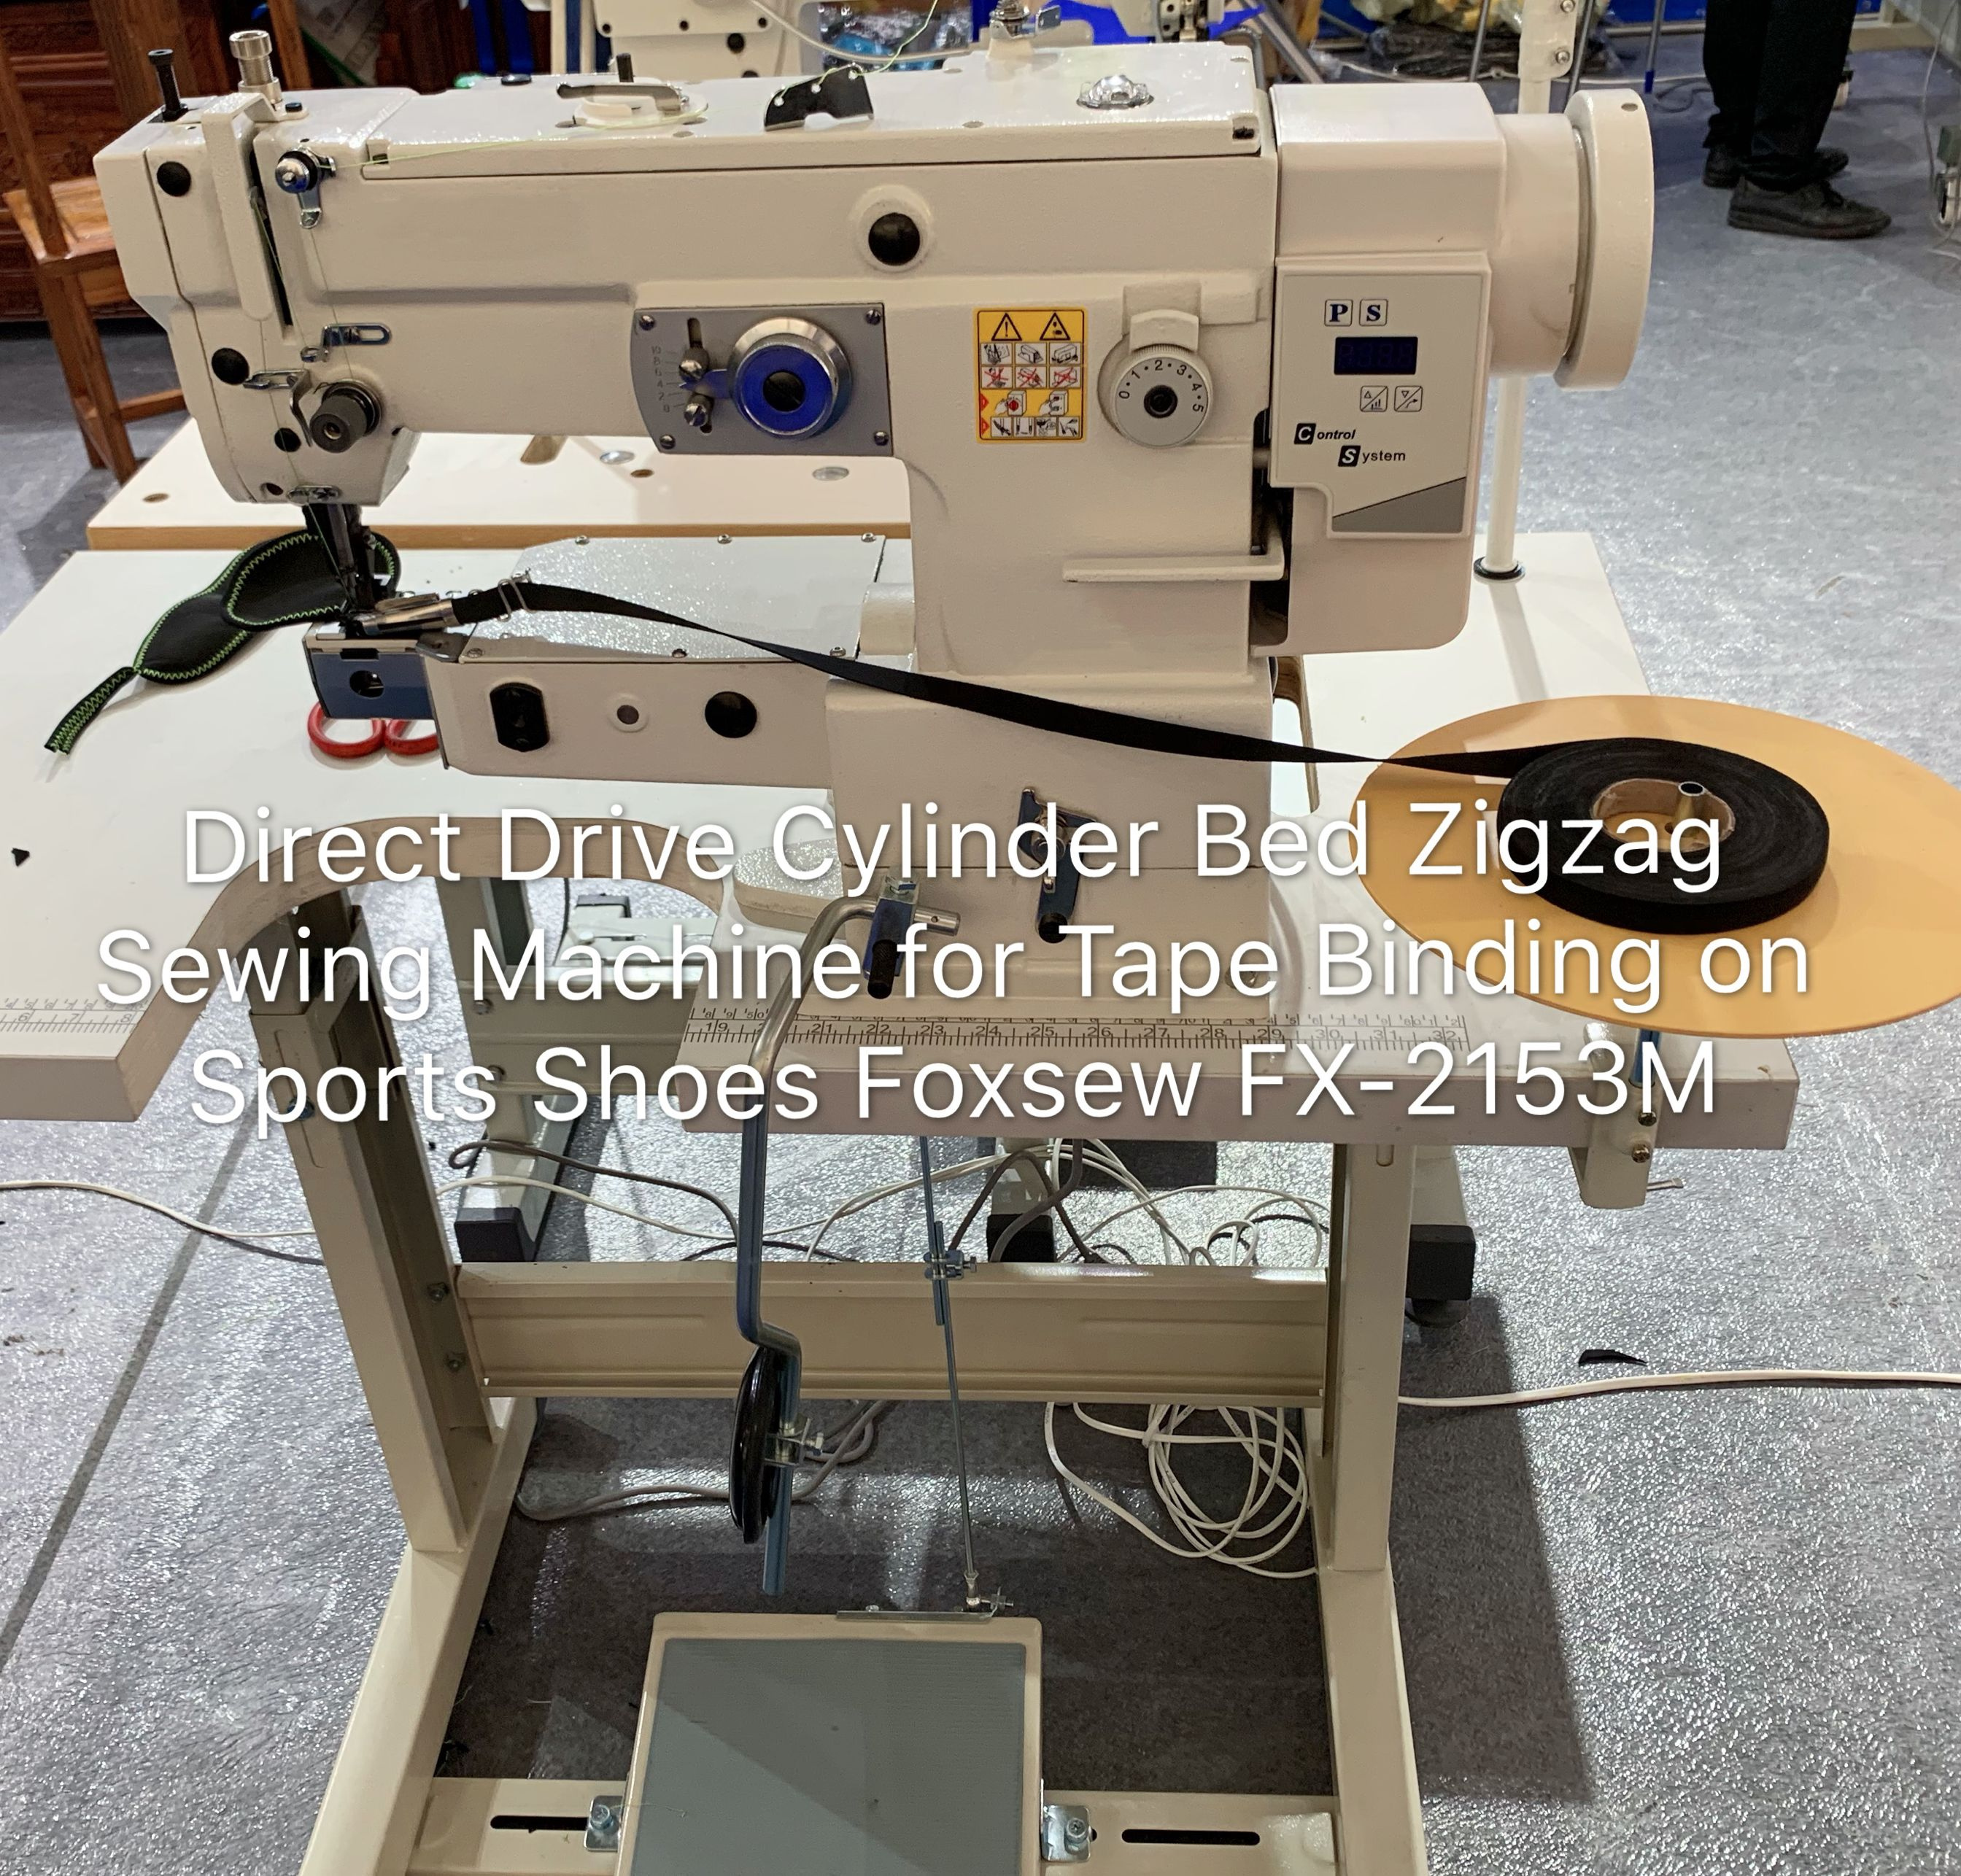 Direct Drive Cylinder Bed Zigzag Sewing Machine for Tape Binding on Sports Shoes Foxsew FX-2153M